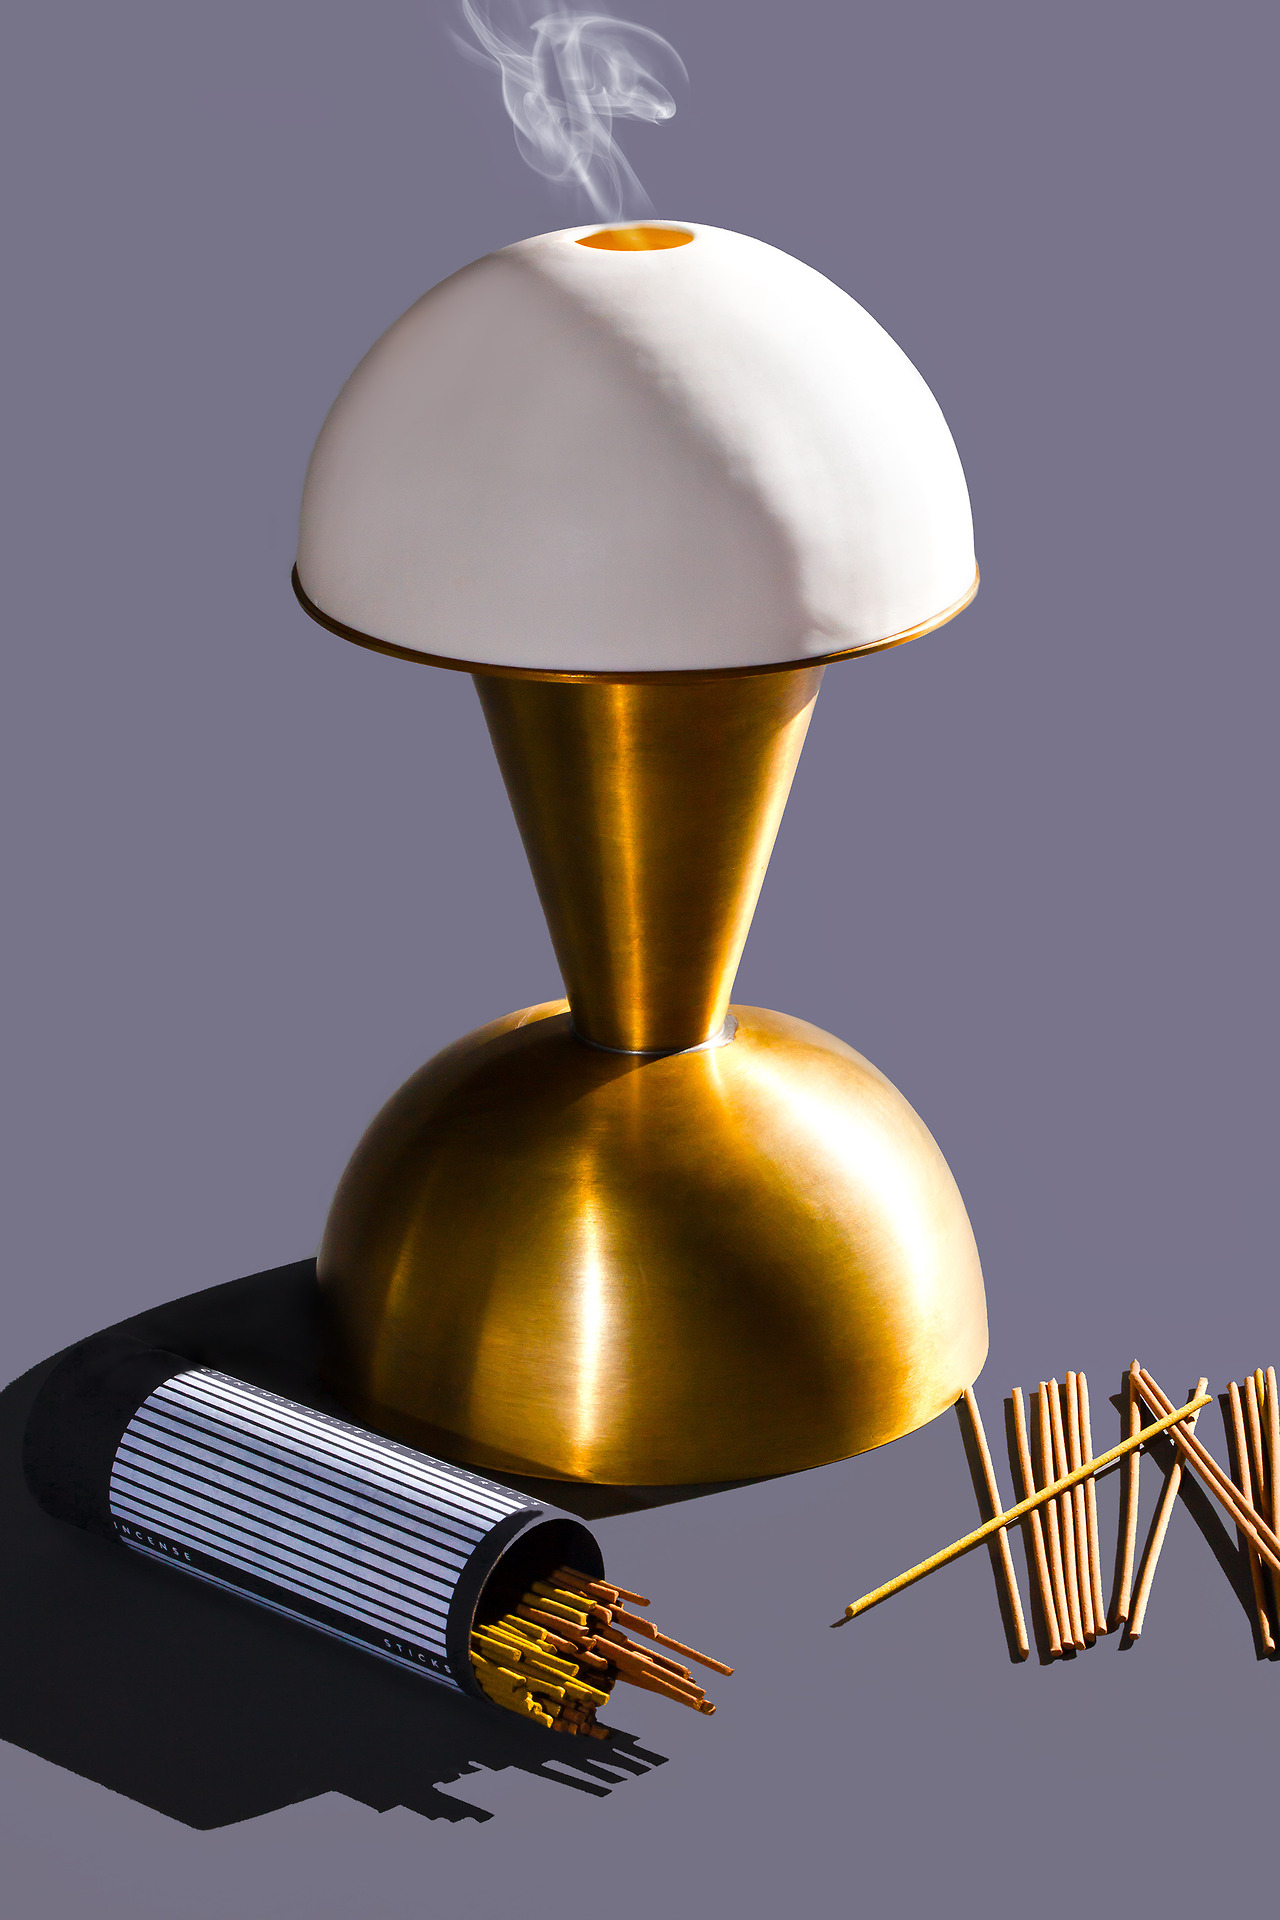 INCENSE BY APPARATUSSTUDIOS FOR   WALLPAPER* MAGAZINE - December 2014